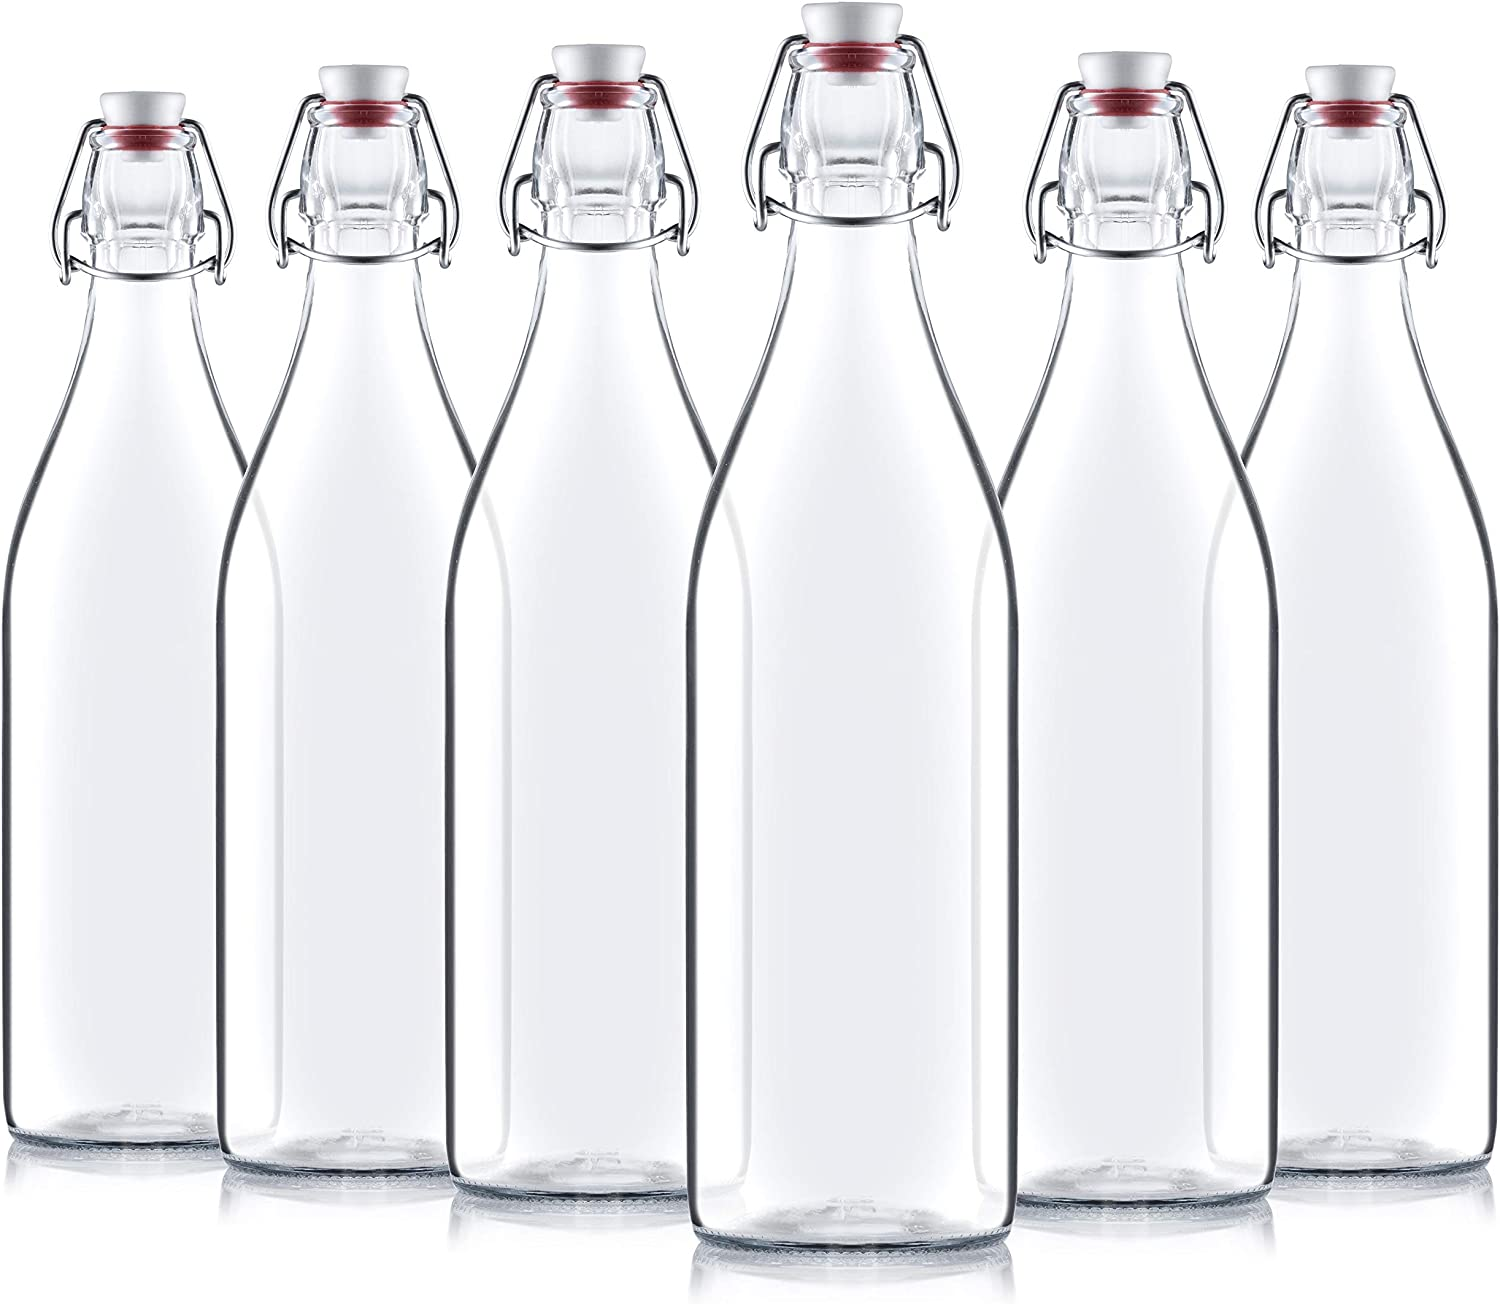 Giara Swing Top Bottles 33 ¾ Ounce/1 Liter (6 Pack) ROUND Clear Glass Grolsch Flip Top Bottle With Stopper, for Beverages, Smoothies, Kefir, Beer, Soda, Juicing, Kombucha, Water, Milk, Oil and Vinegar: Kitchen & Dining